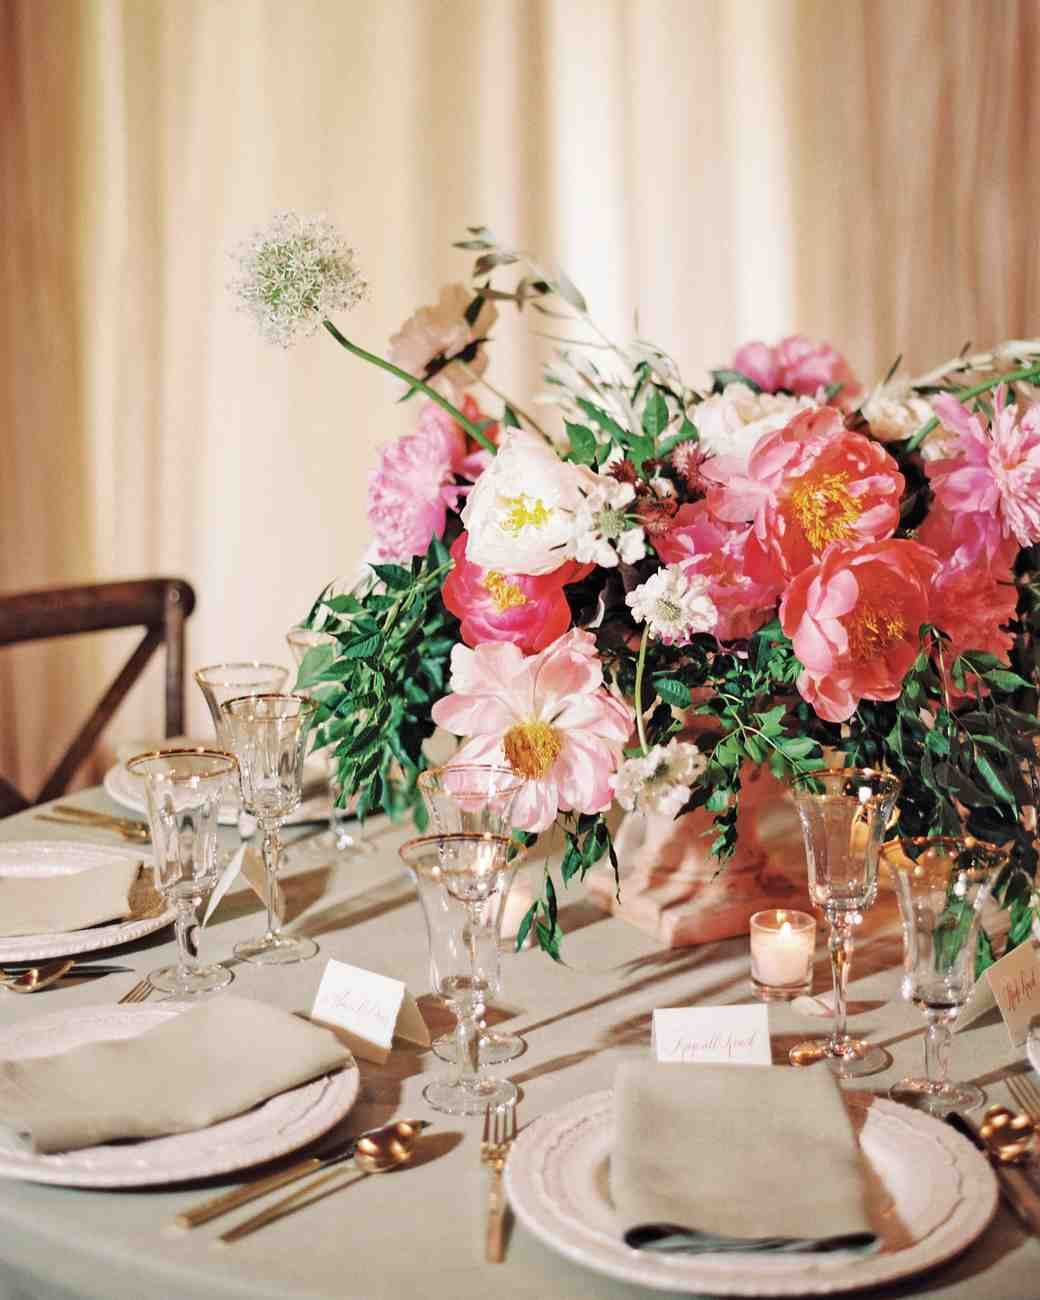 david-tyler-real-wedding-centerpiece-and-place-settings.jpg